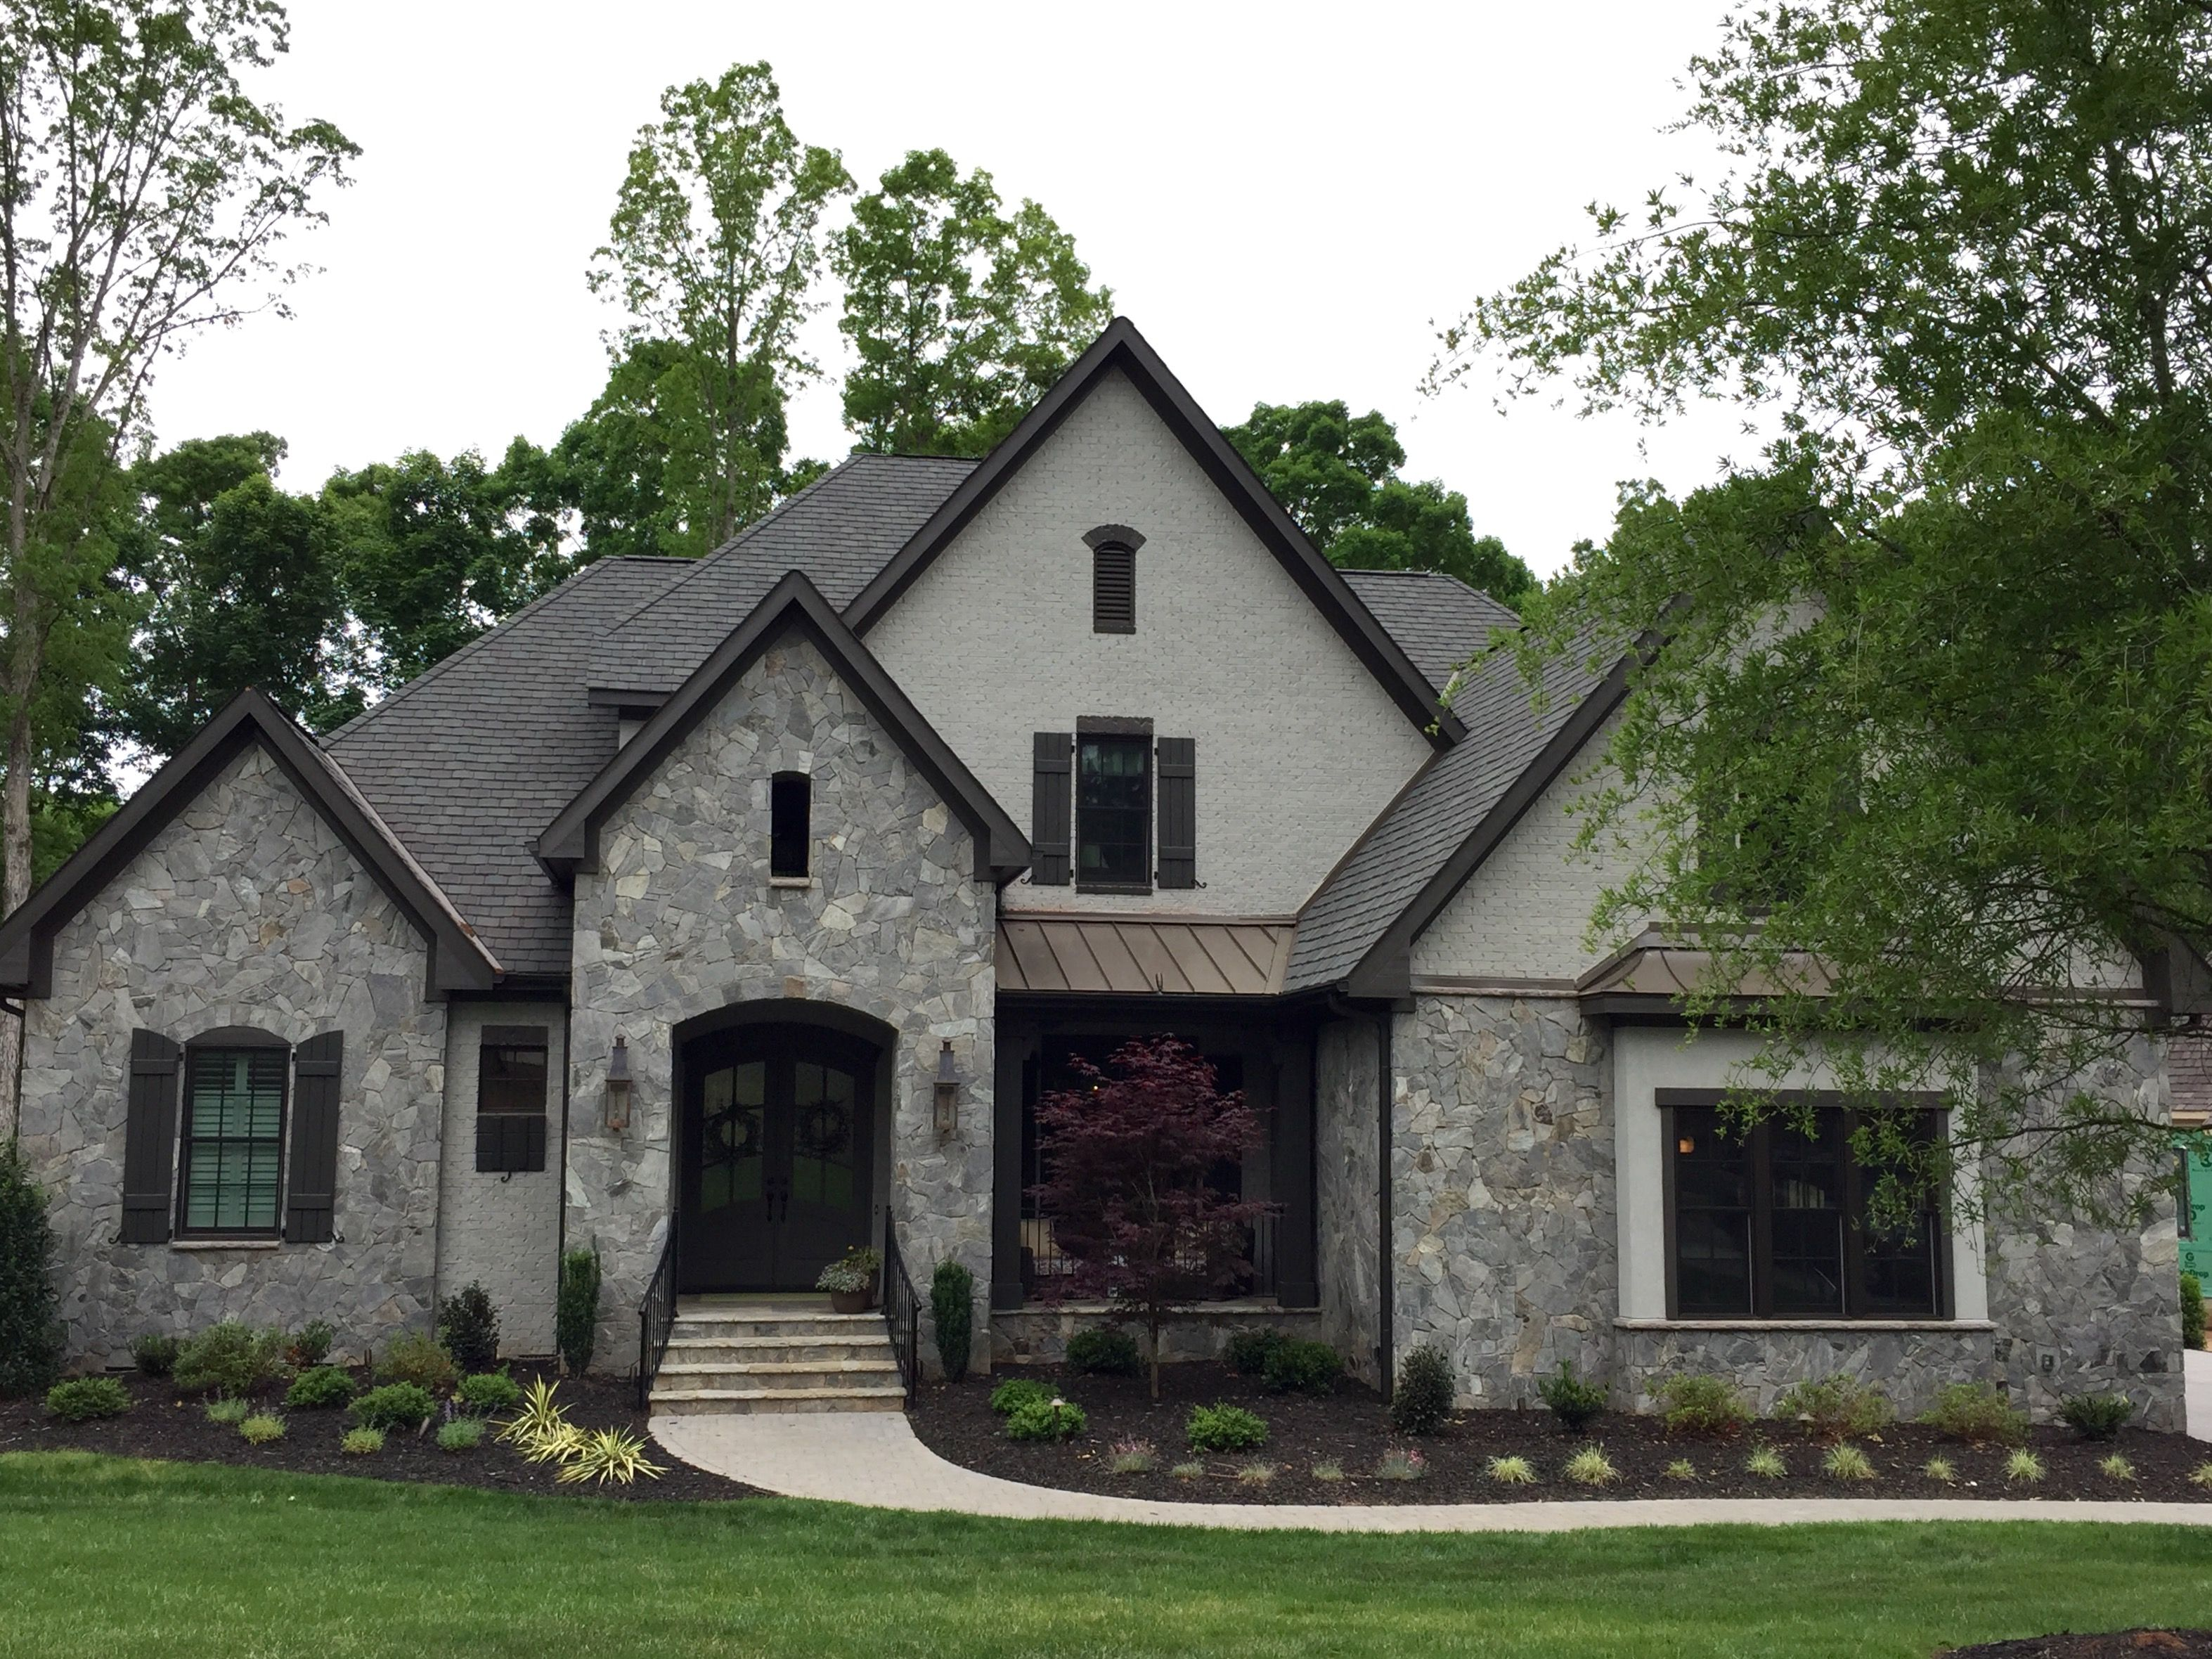 Arh plan asheville 1131f exterior 42 stone dove gray Black brick homes